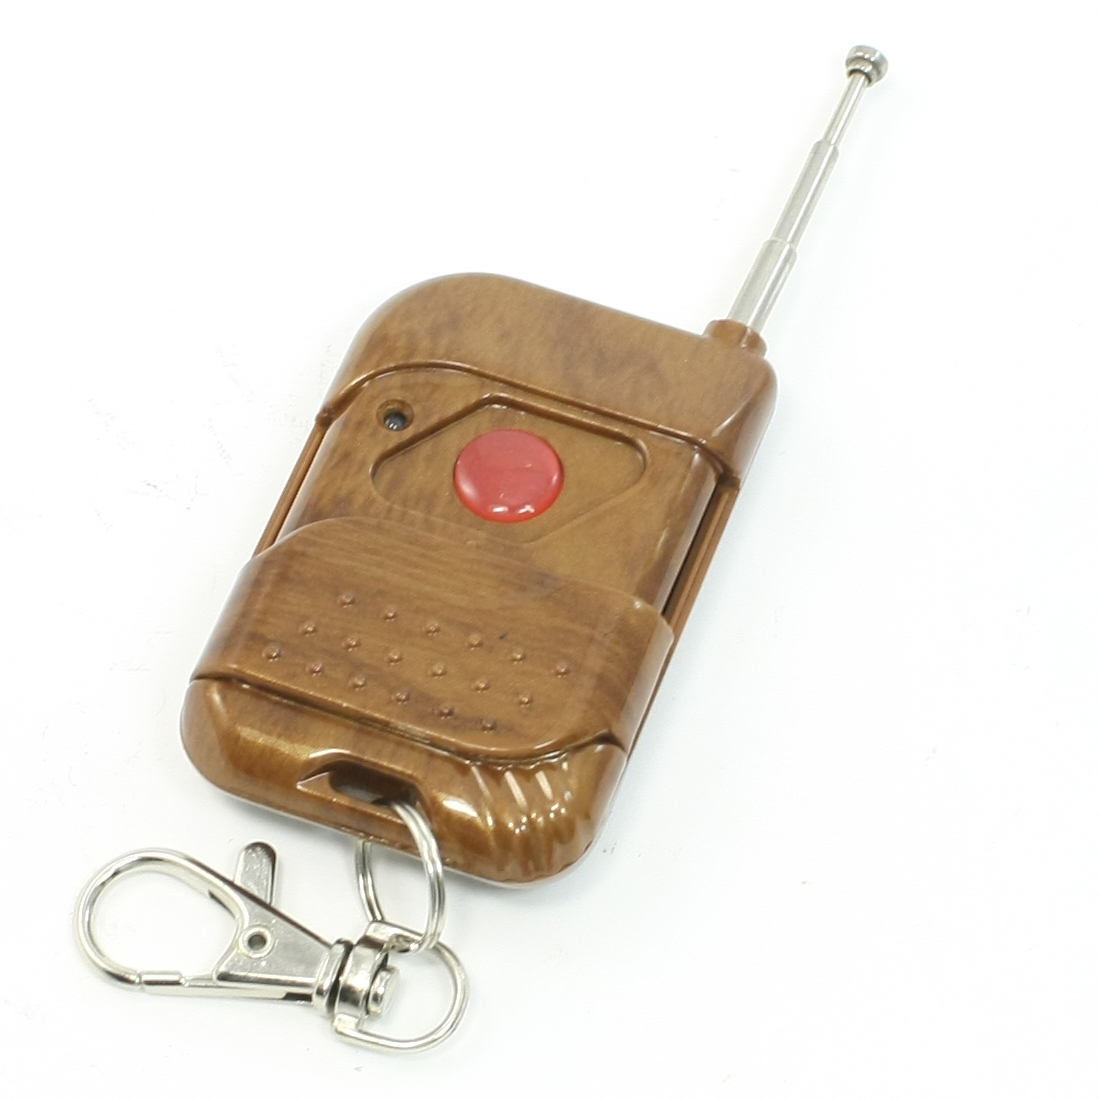 Slide Cover 1 Button 433MHz RF Wireless Remote Controller Transmitter Key Chain